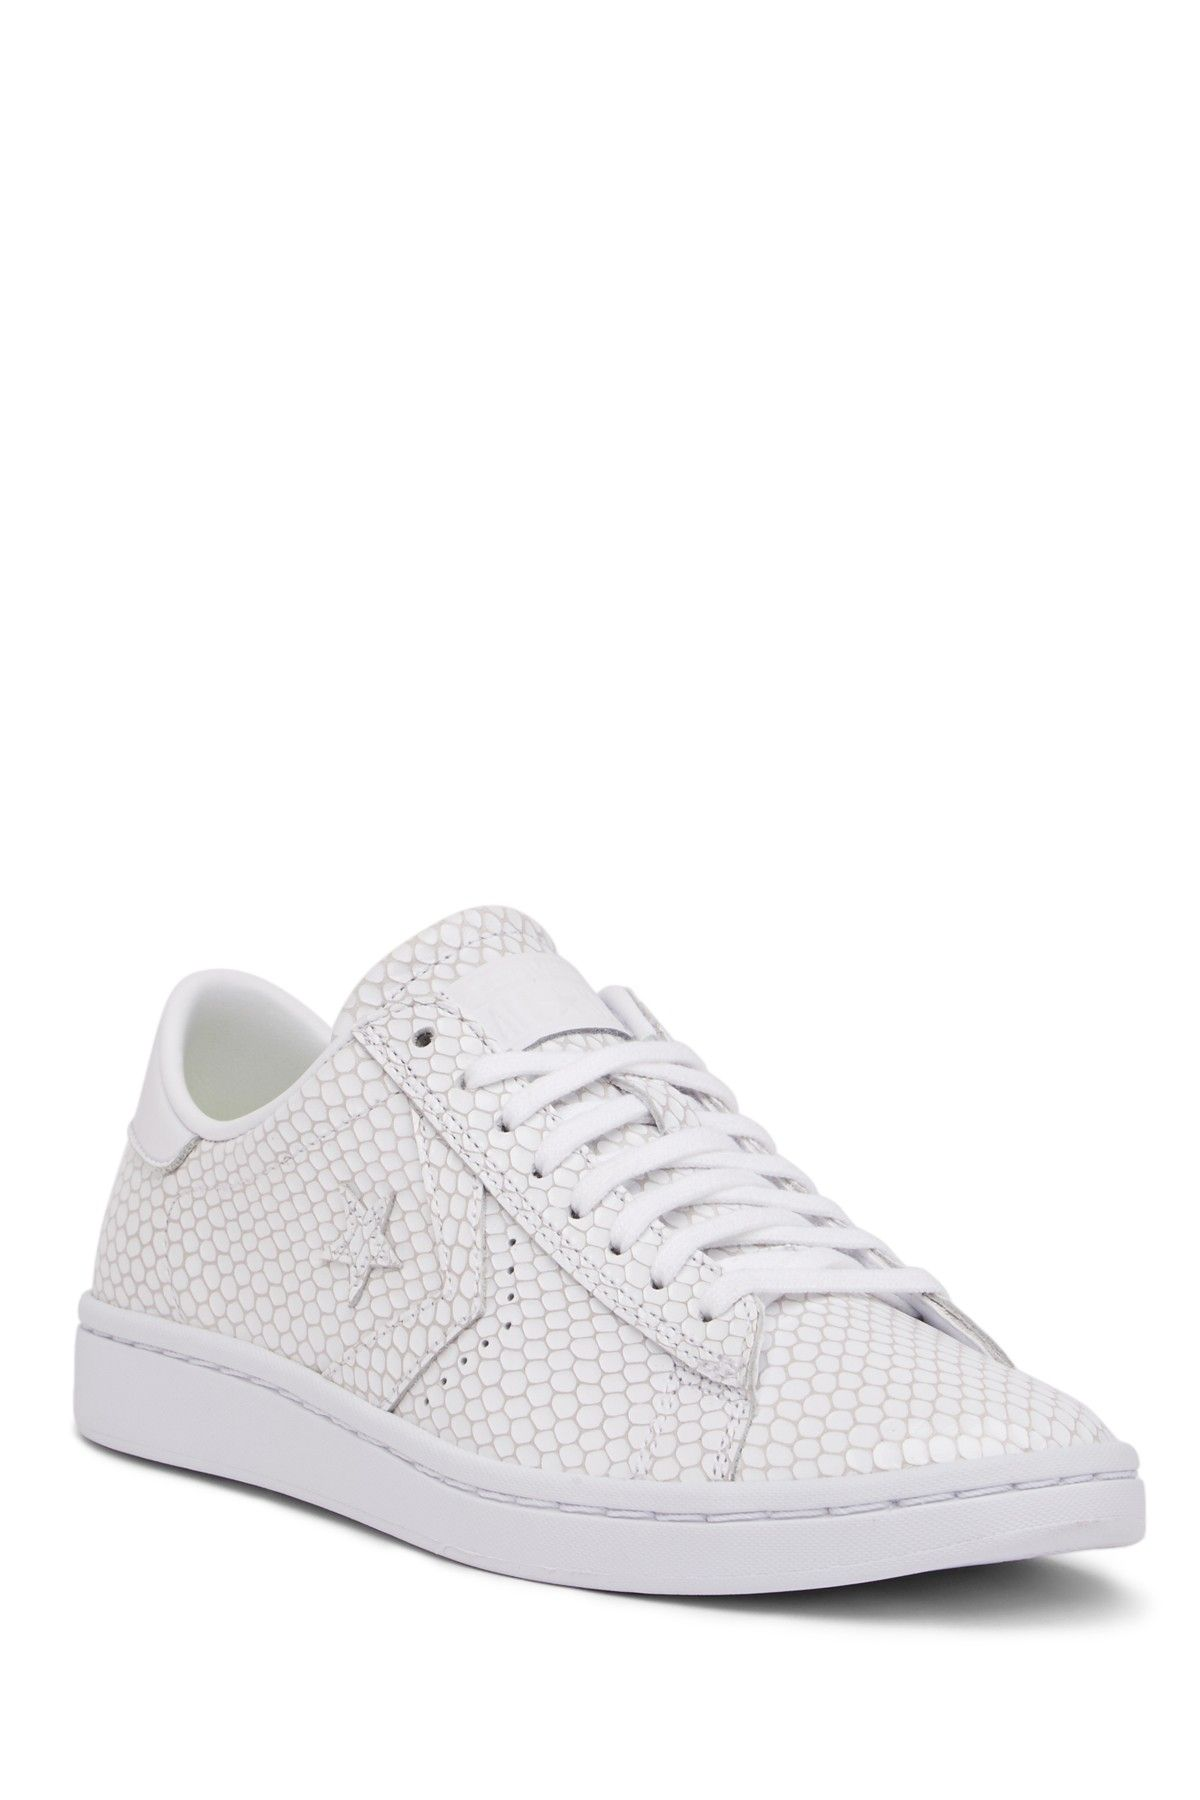 0ce5d23bae2 PL LP Snake Embossed Leather Oxford Oxford Sneakers